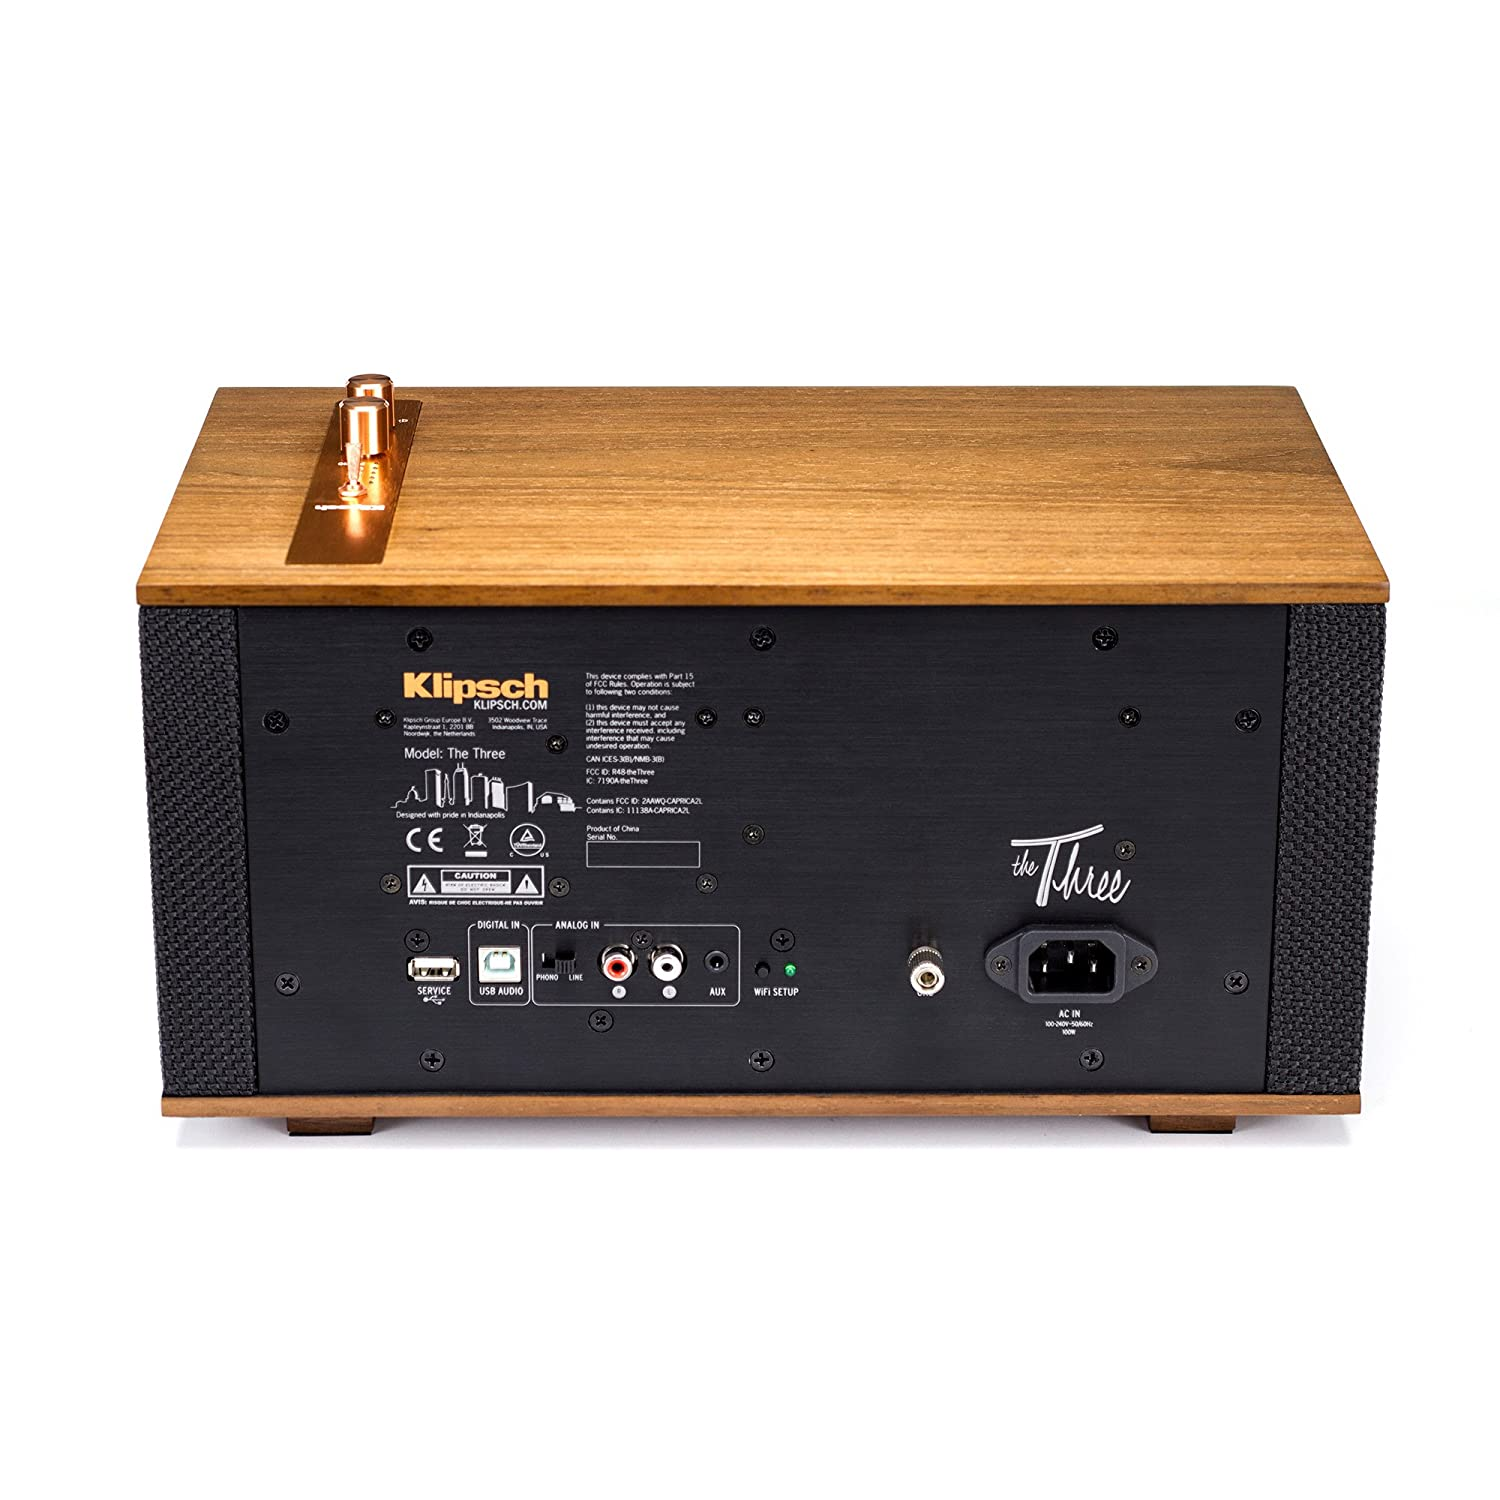 Ital tees bass culture and sound system clothing - Amazon Com Klipsch Heritage Wireless Three Tabletop Stereo System Walnut Electronics